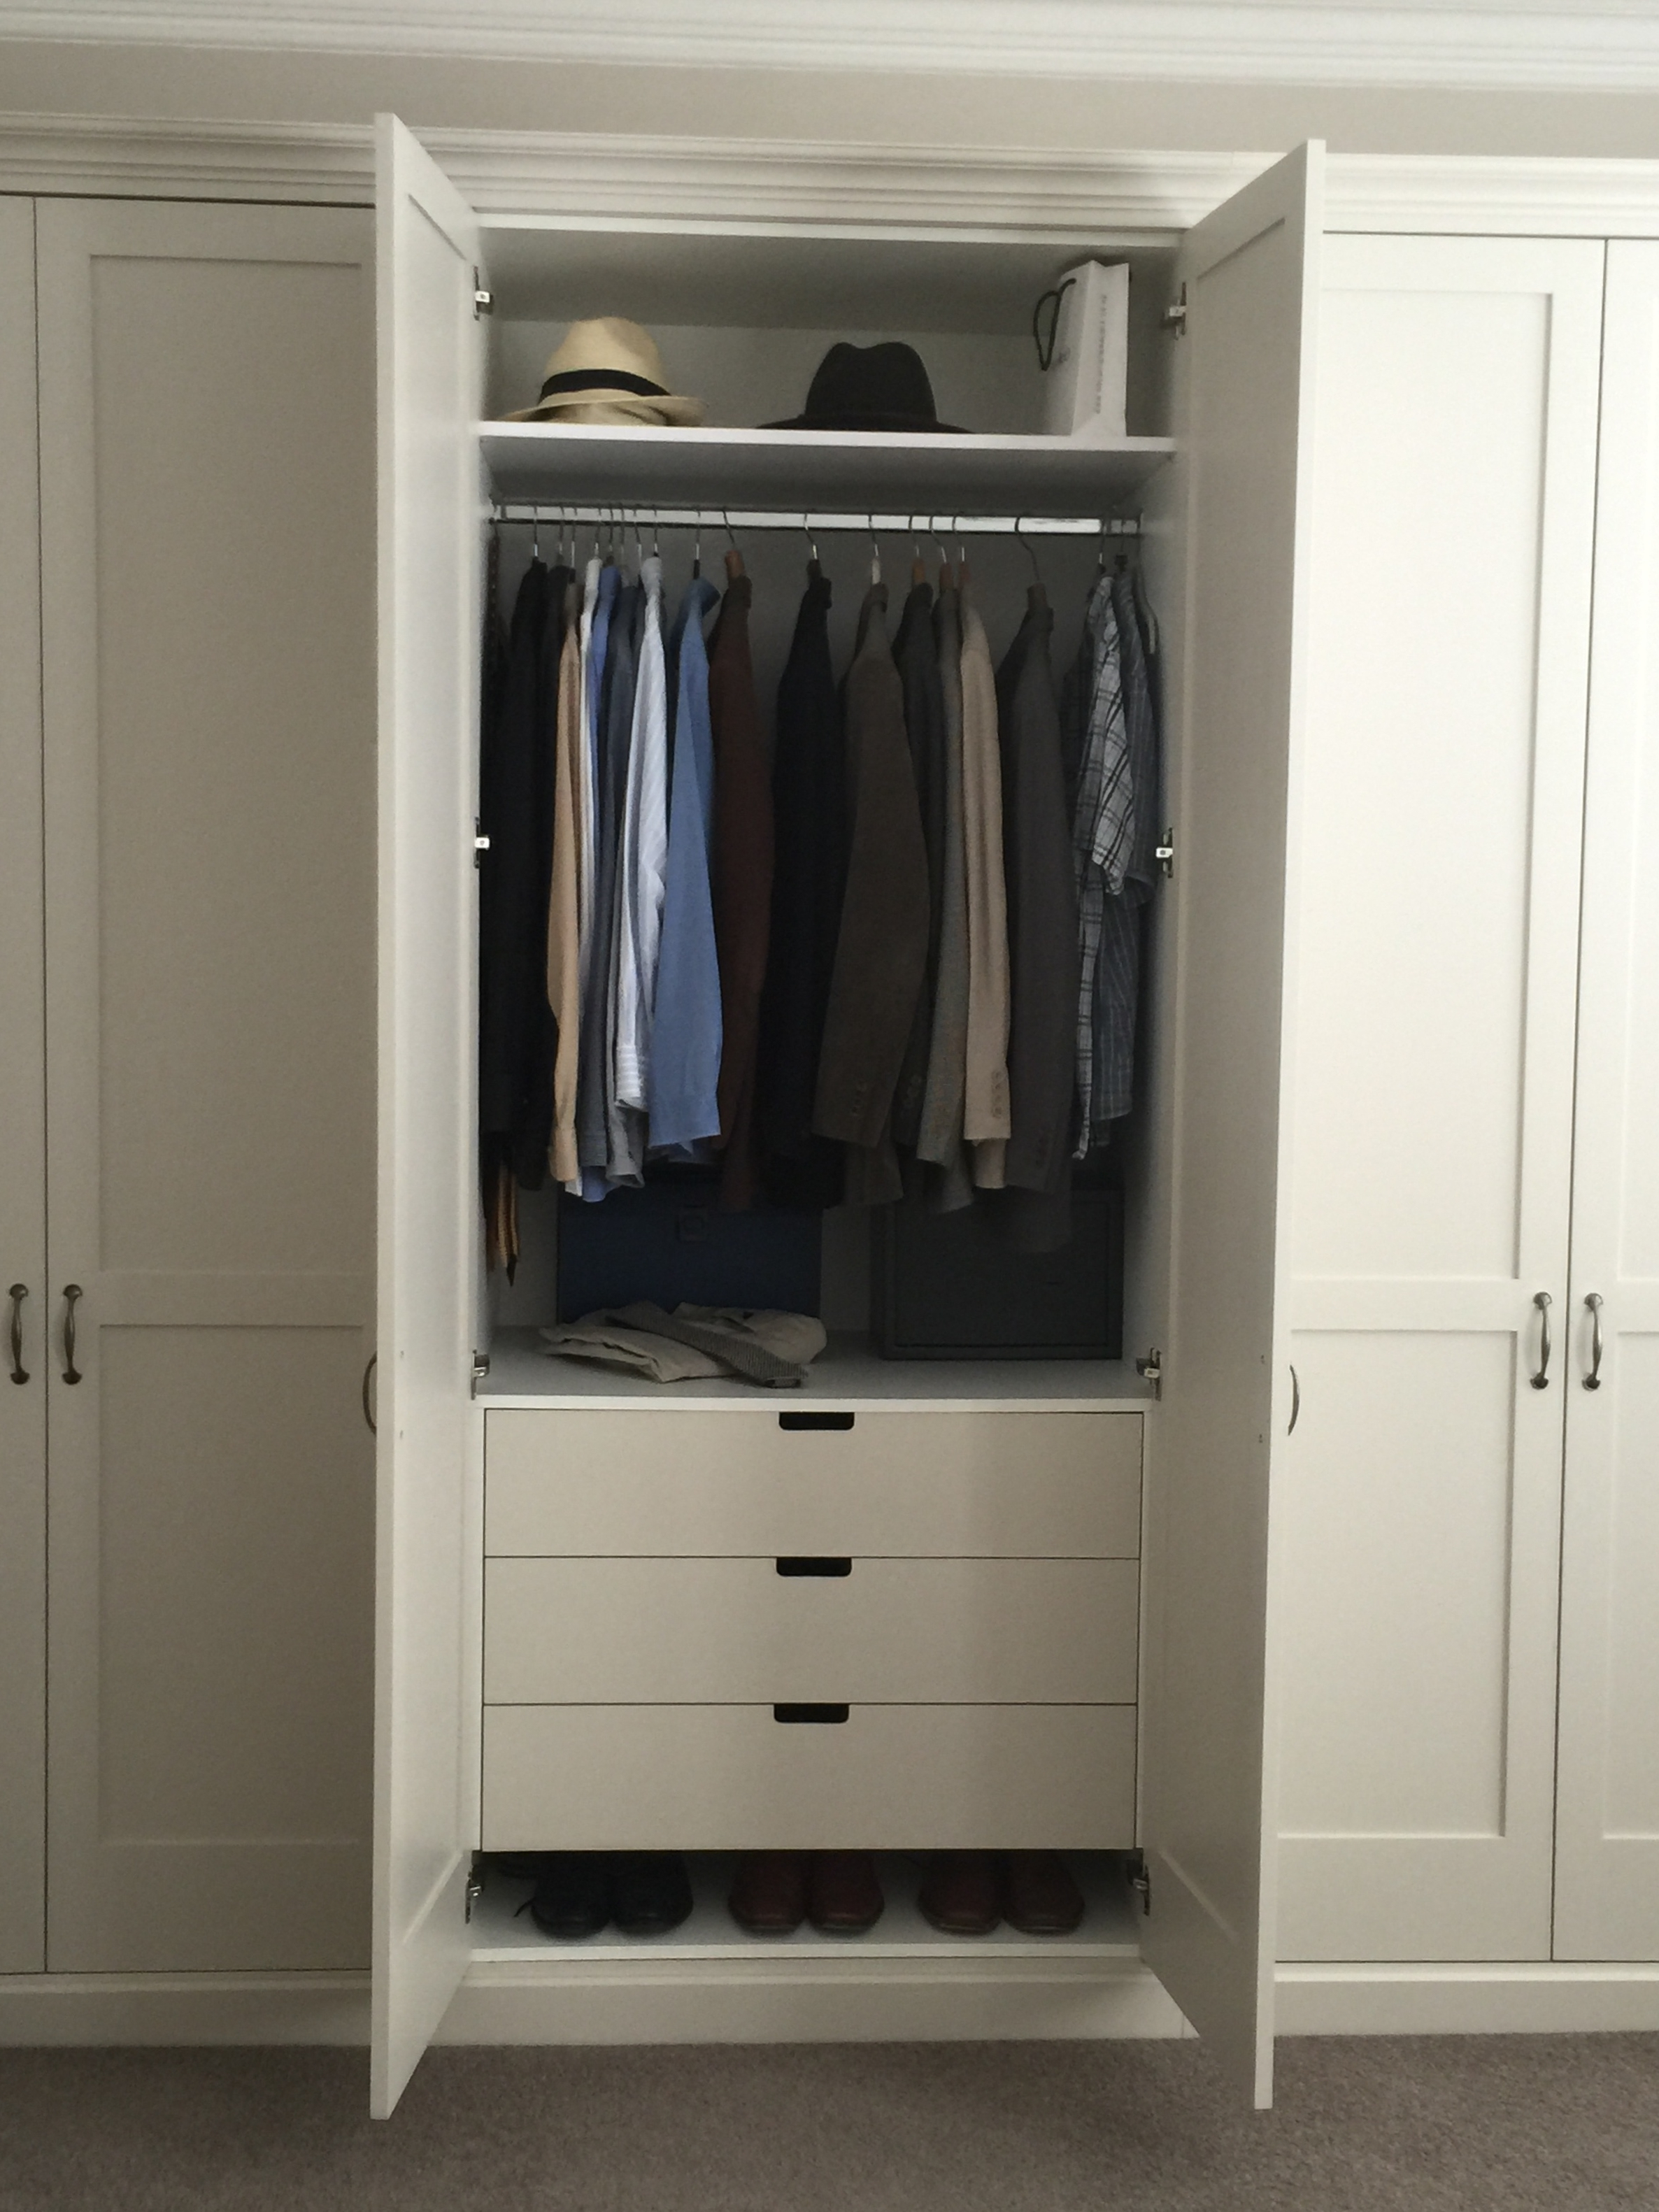 Traditional Shaker Wardrobes, With Drawers Inside, Shelves And Throughout 2018 Wardrobe With Shelves And Drawers (View 10 of 15)